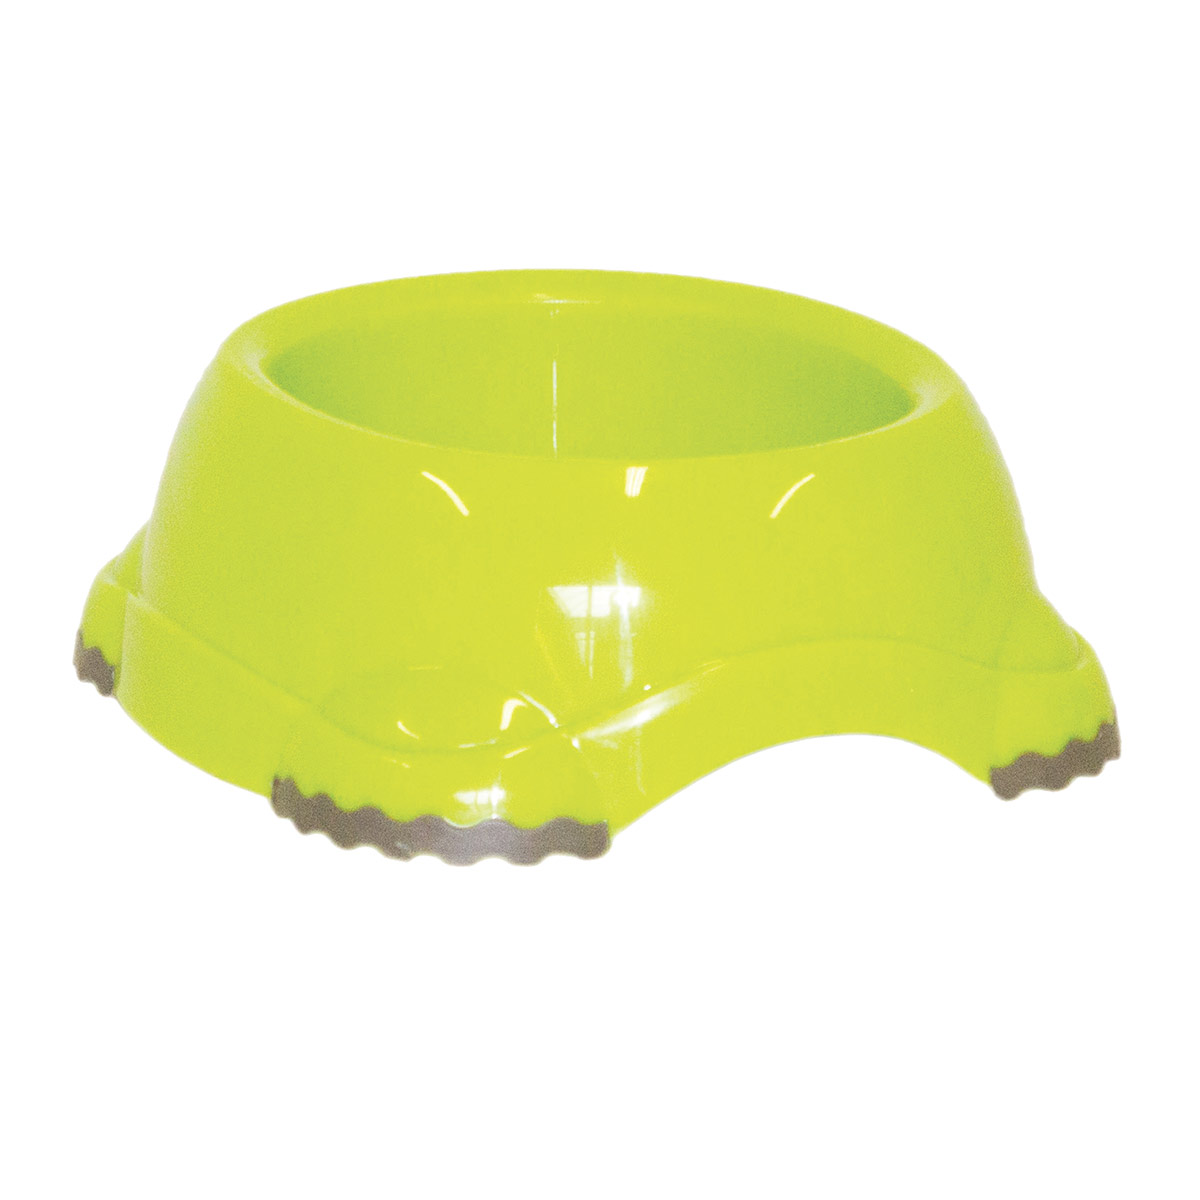 Smarty Bowl Medium Dog Bowl Fun Green 3.1 Cup Capacity